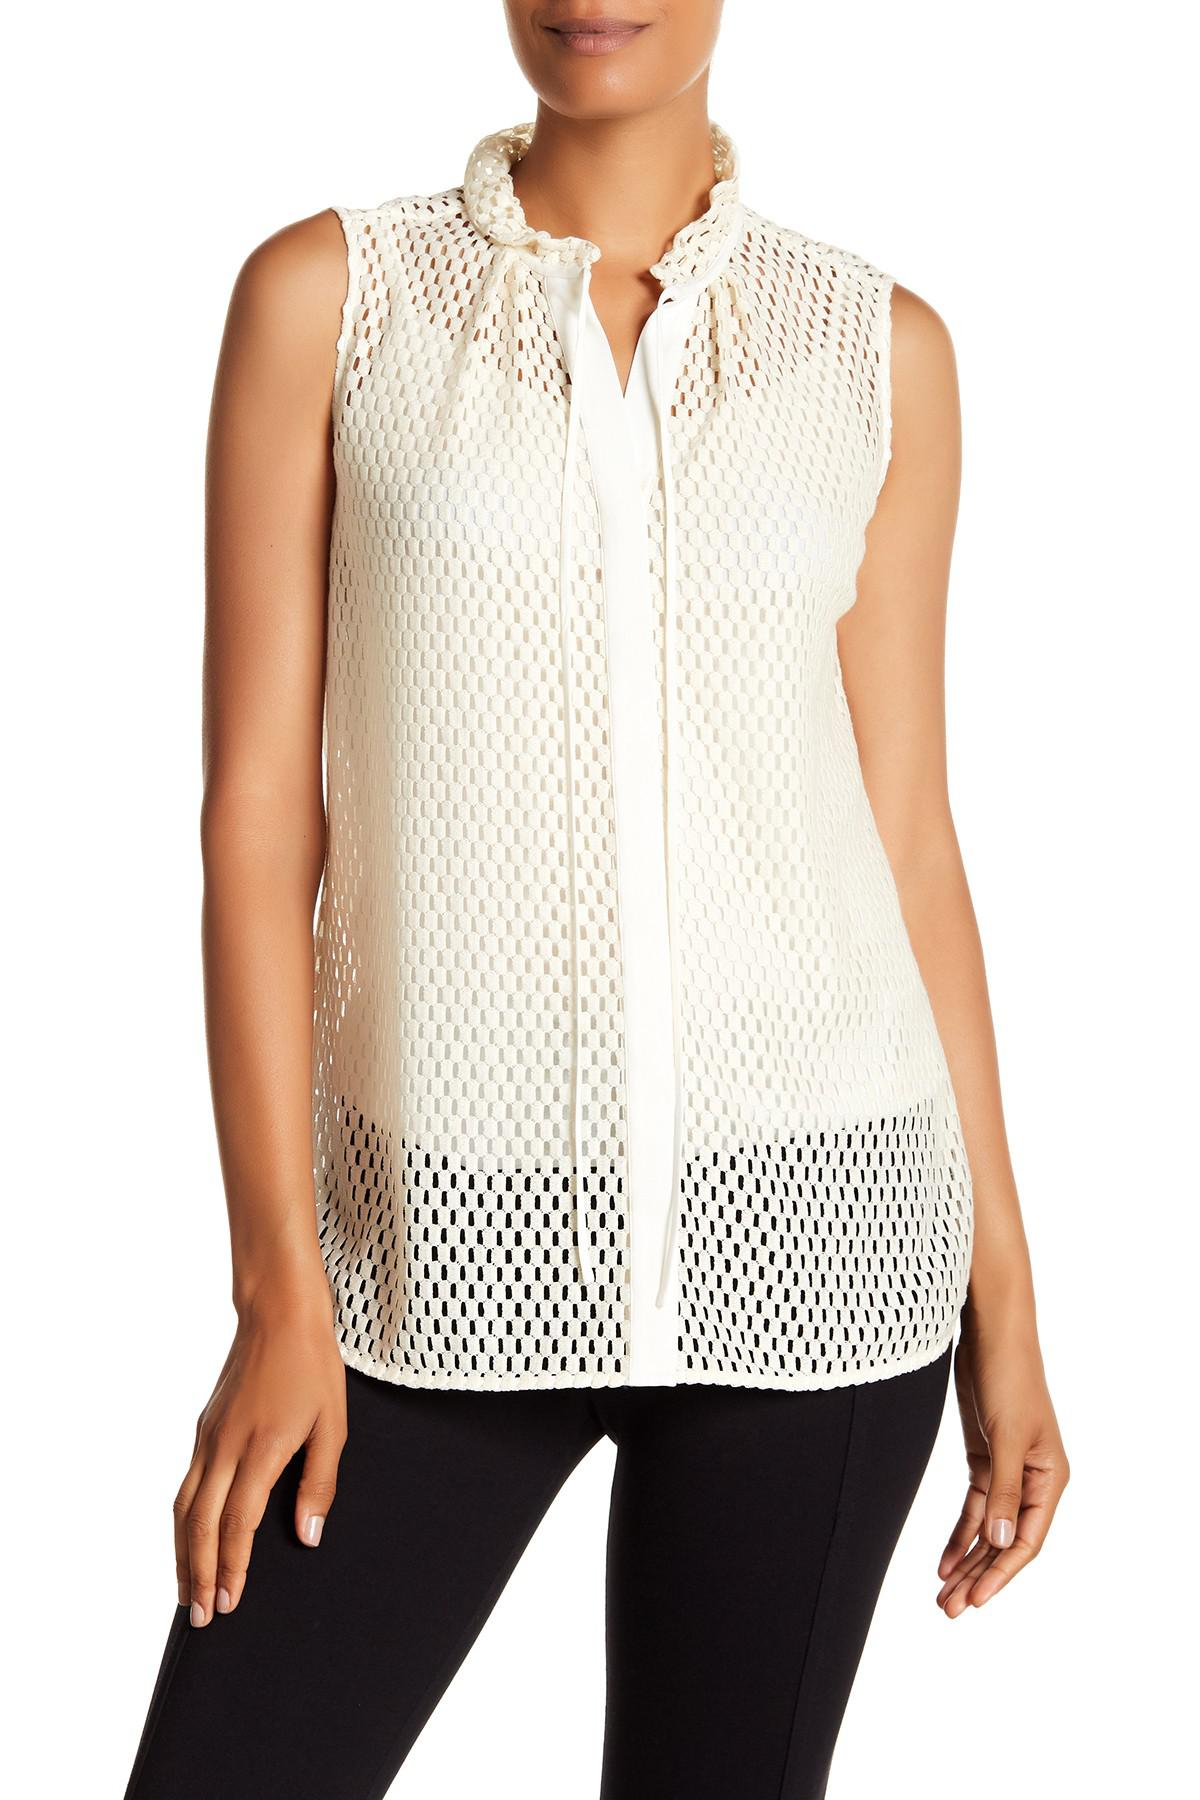 c14a9a3c40bf95 Lyst - Lafayette 148 New York Annetta Blouse in White